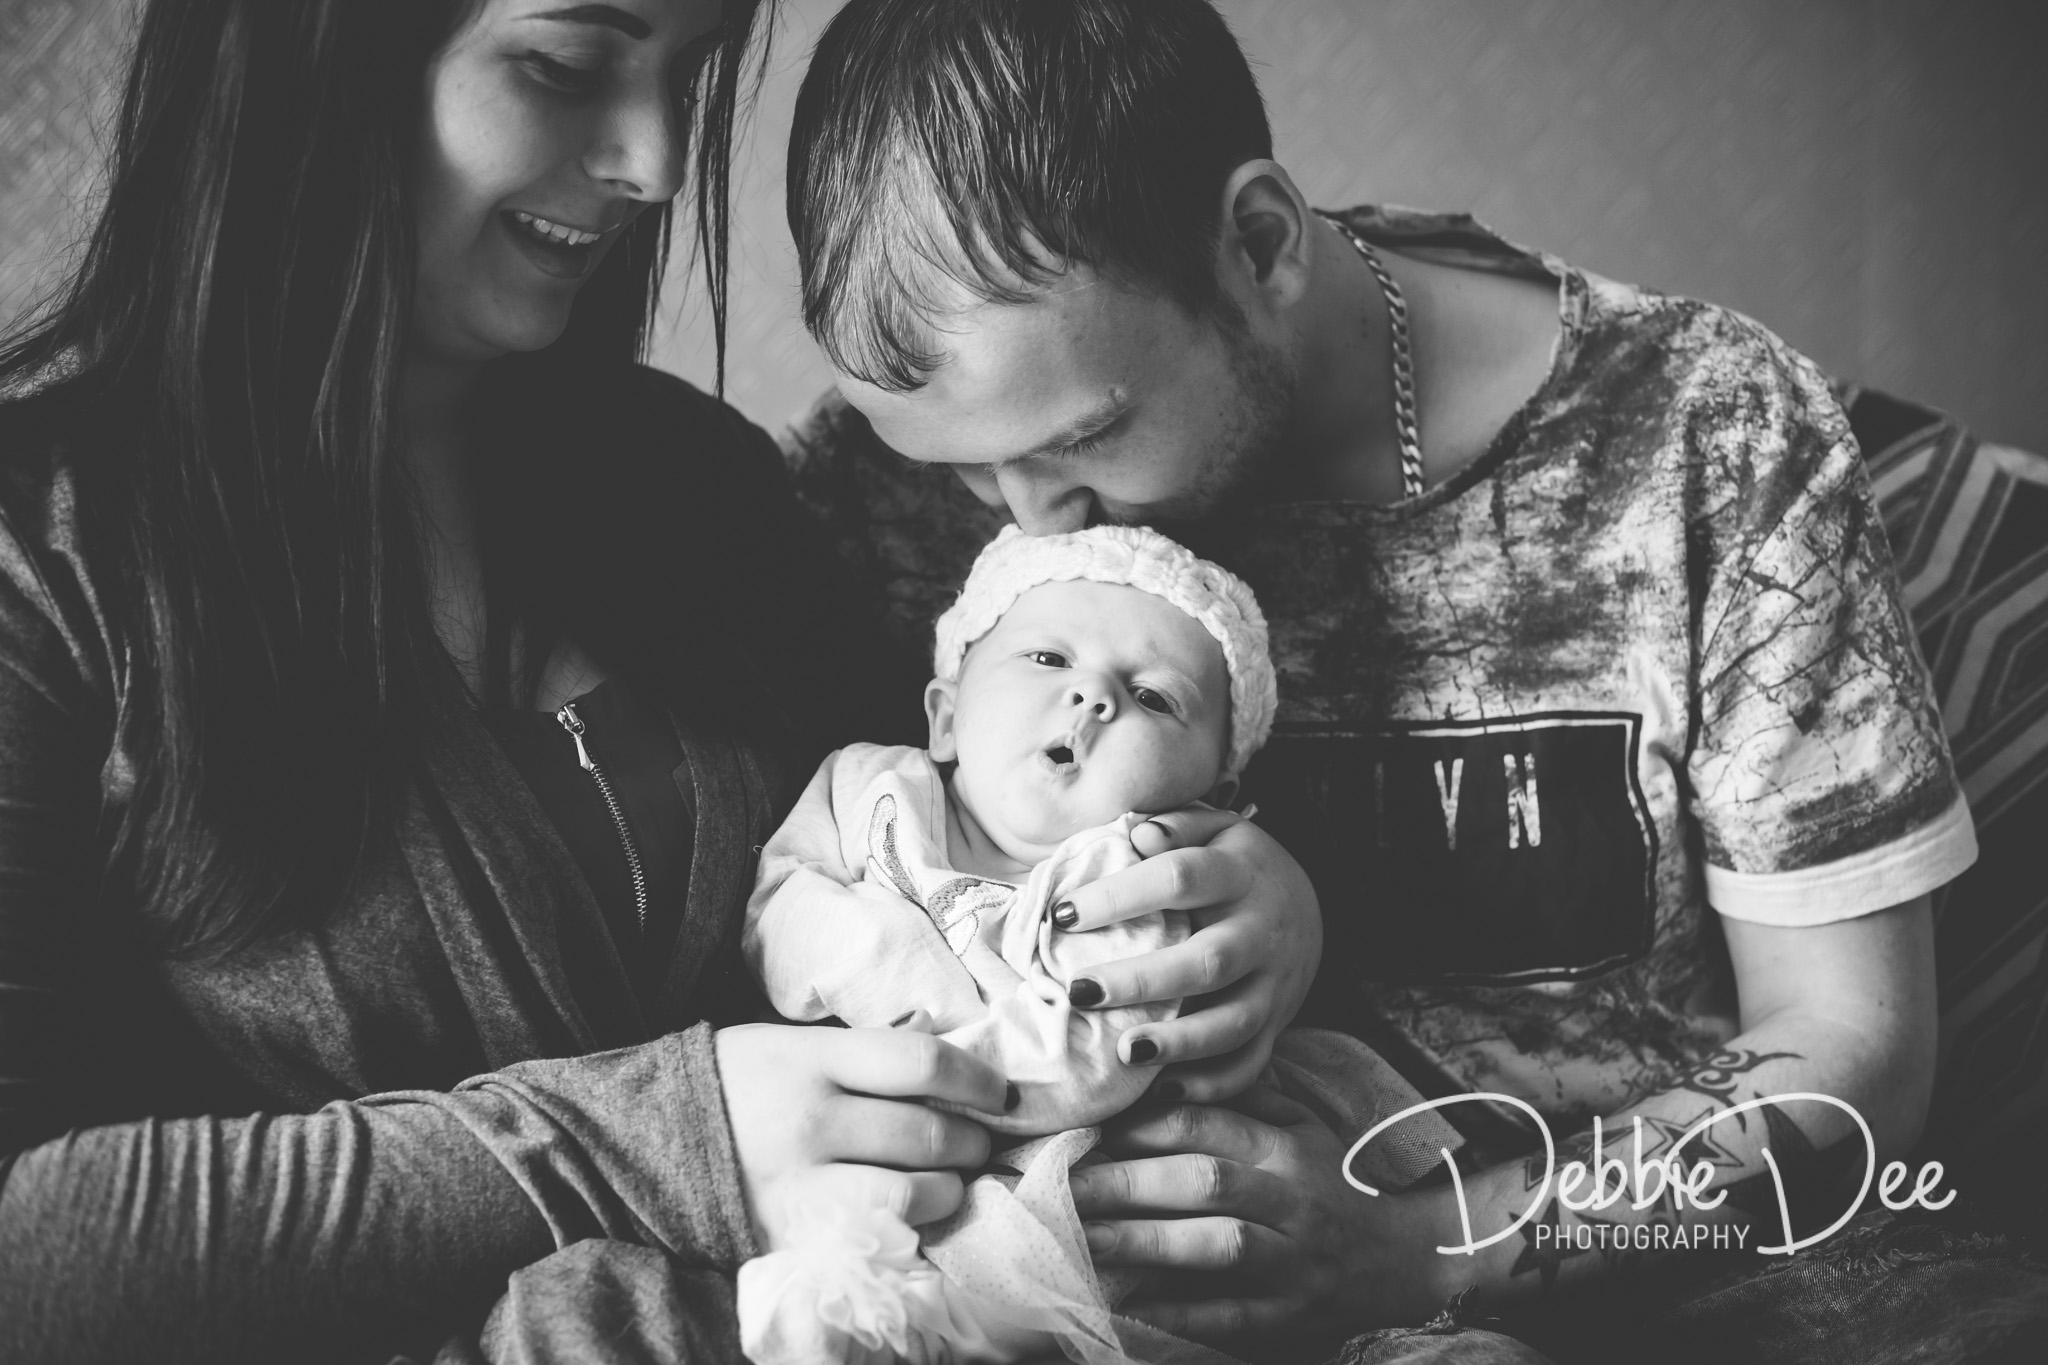 Family photography in-home lifestyle session aberdeenshire Debbie Dee Photography Dad kissing baby